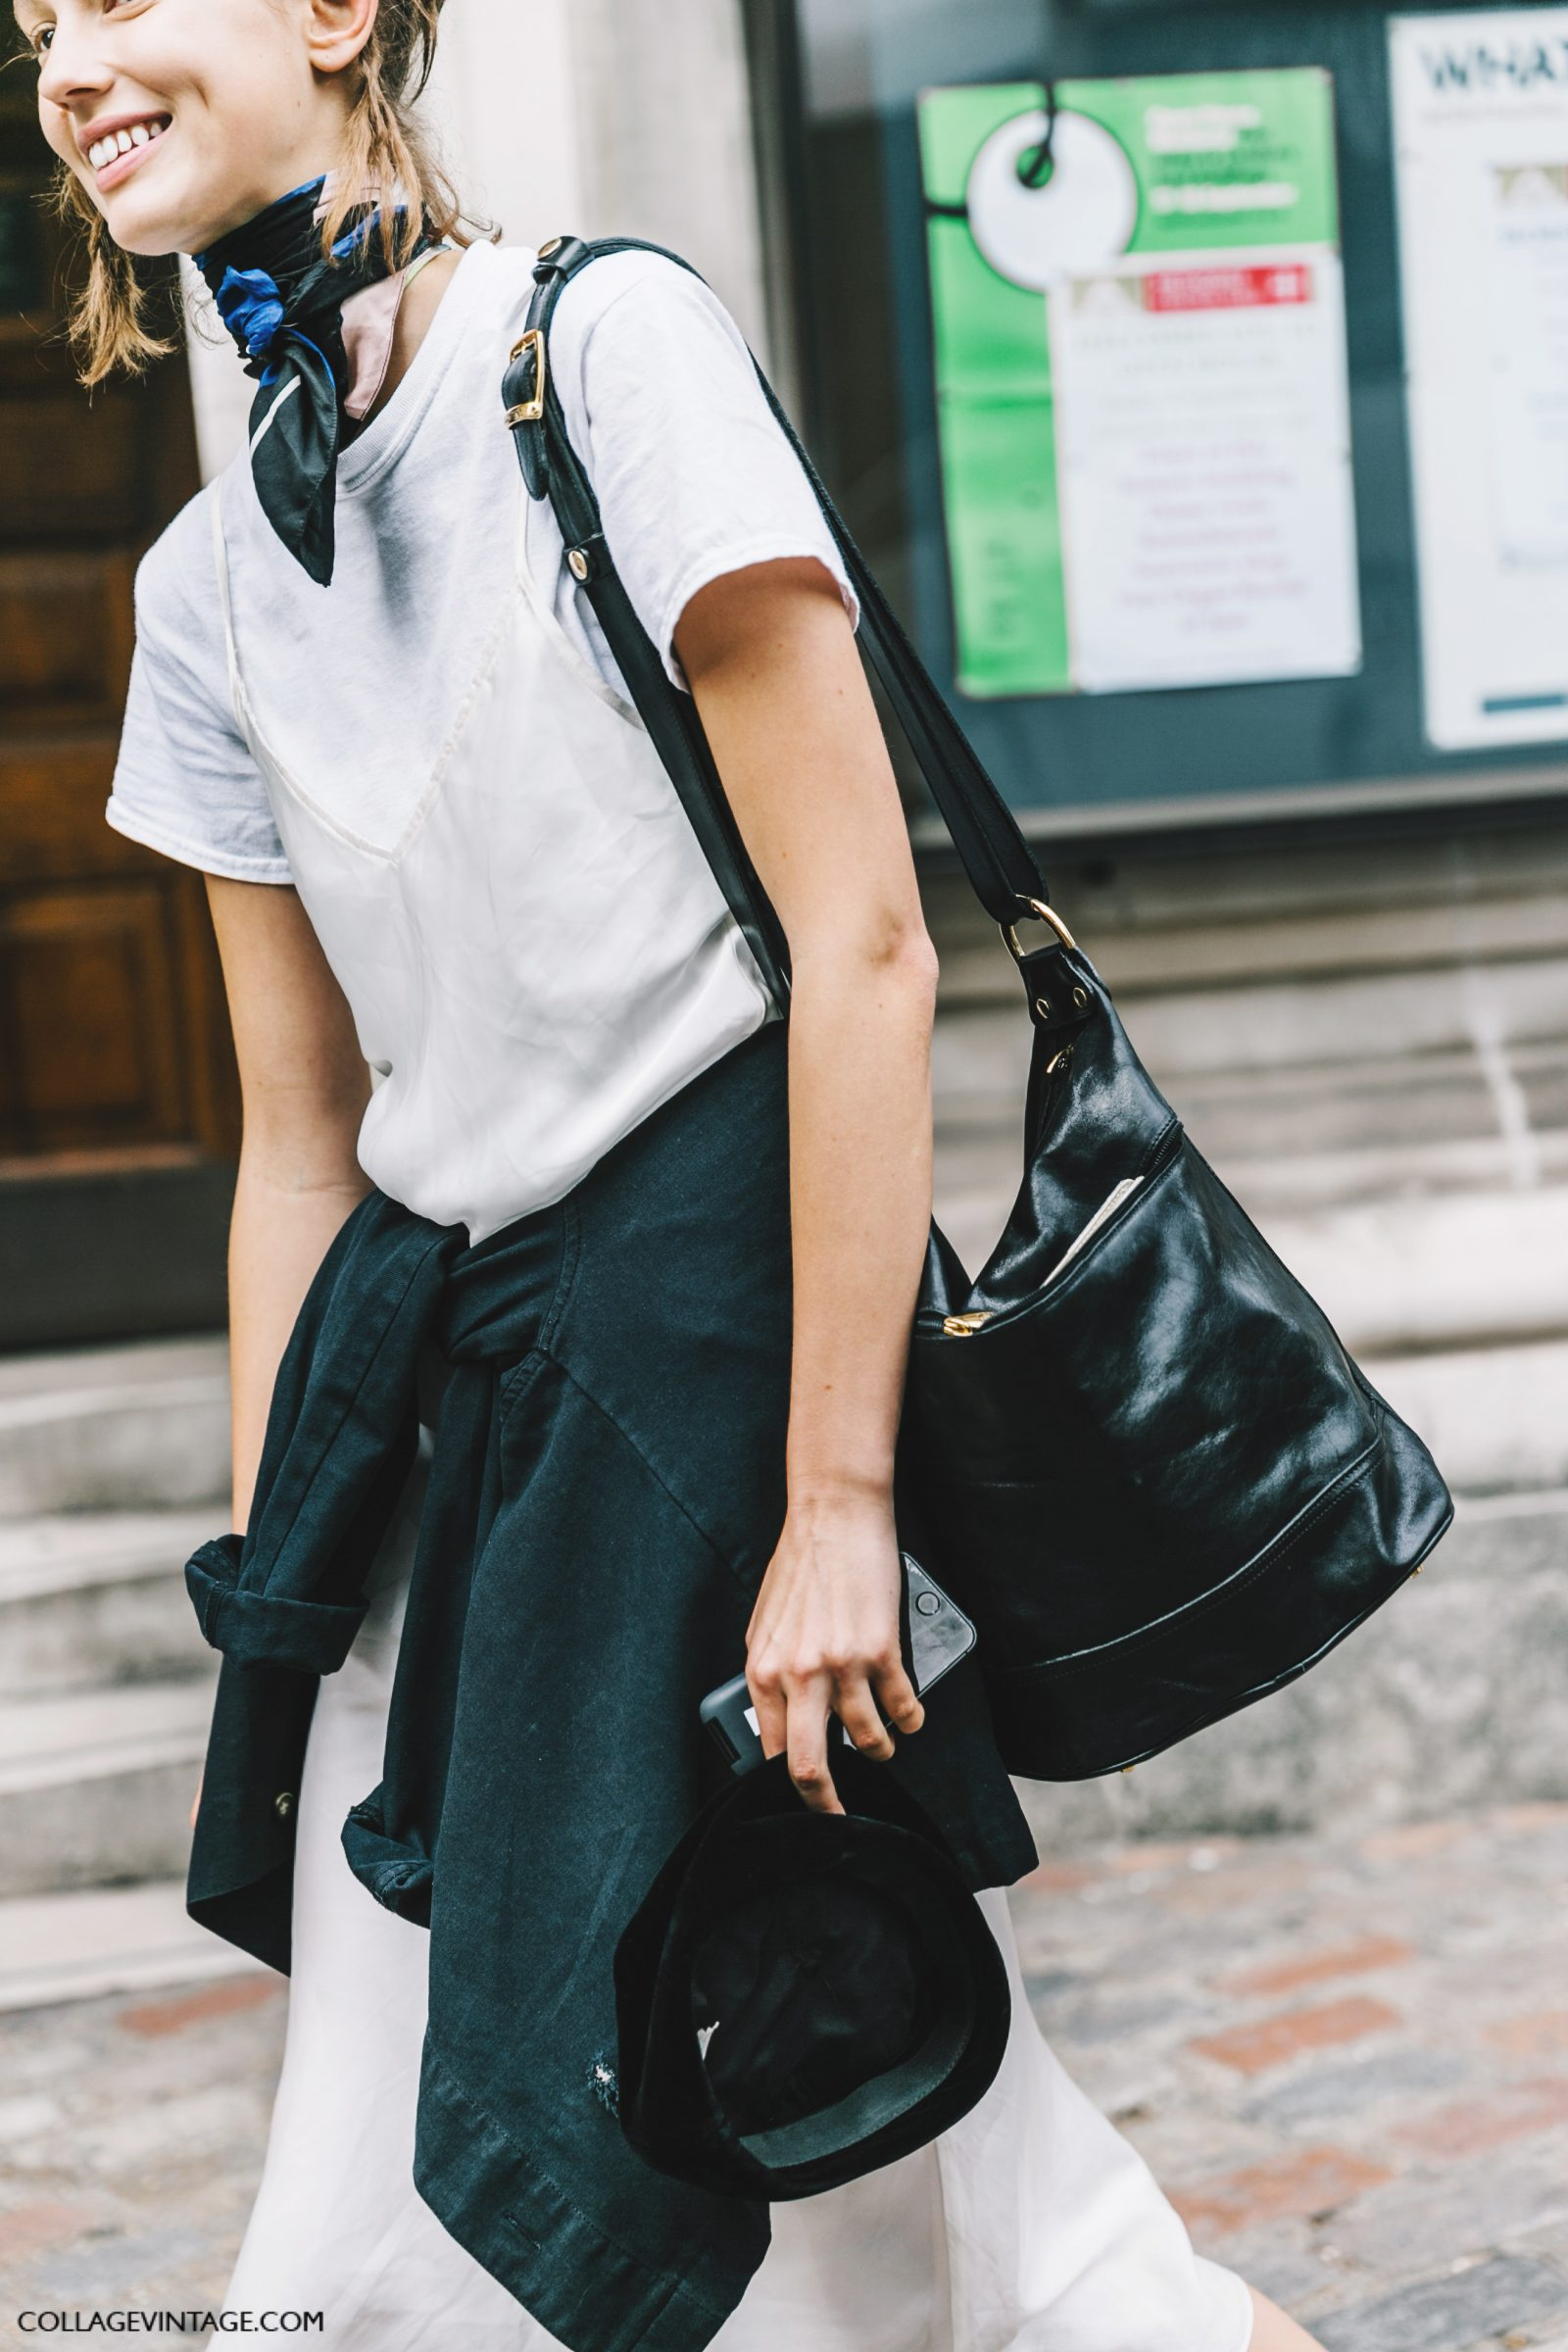 lfw-london_fashion_week_ss17-street_style-outfits-collage_vintage-vintage-topshop_unique-anya-mulberry-preen-82